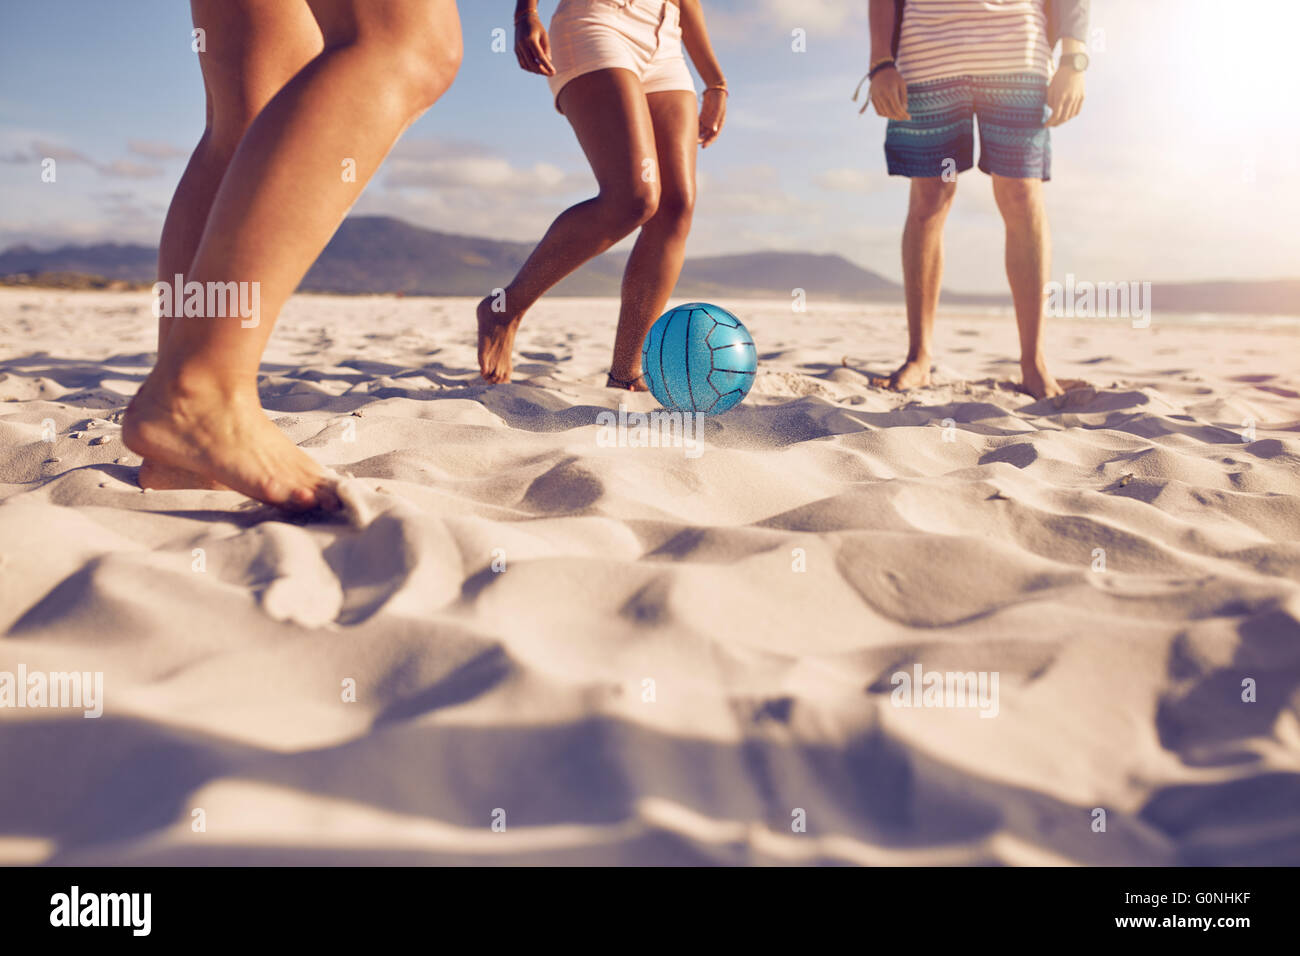 Low section portrait of group of friends playing soccer on the beach. a girl is passing the ball to friends. - Stock Image